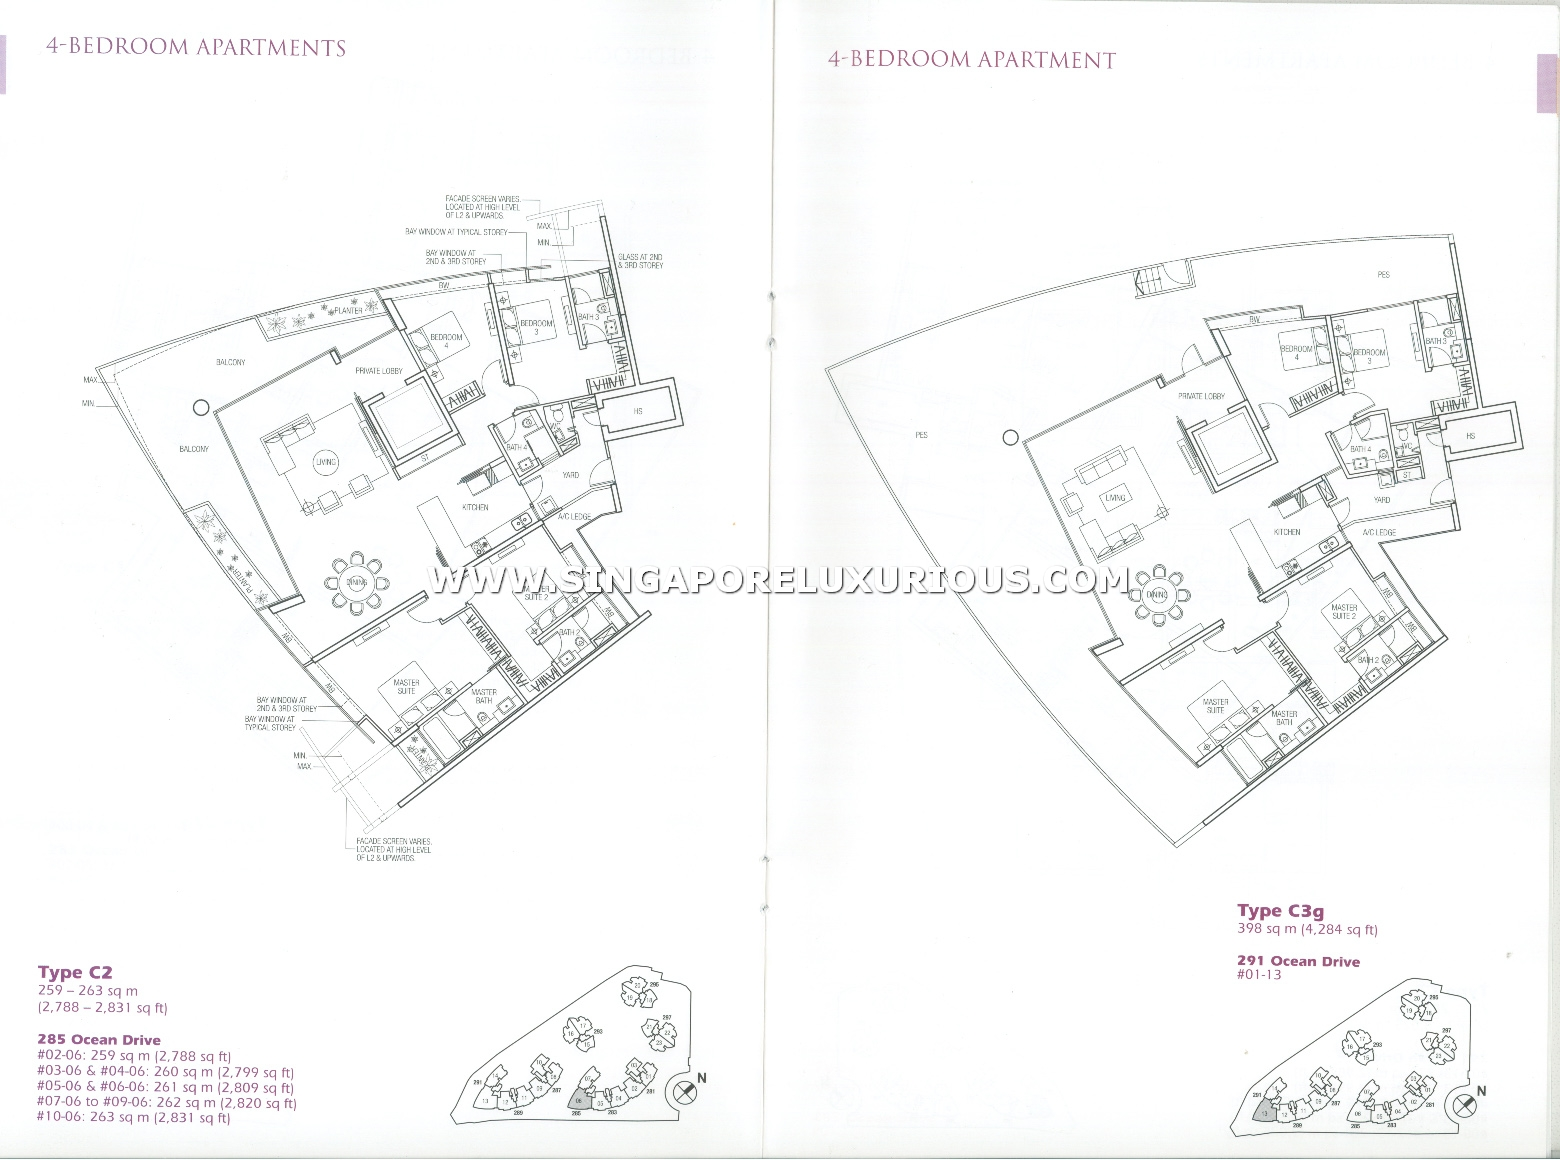 the oceanfront sentosa cove site floor plan singapore luxurious Merlion Sentosa Singapore share this